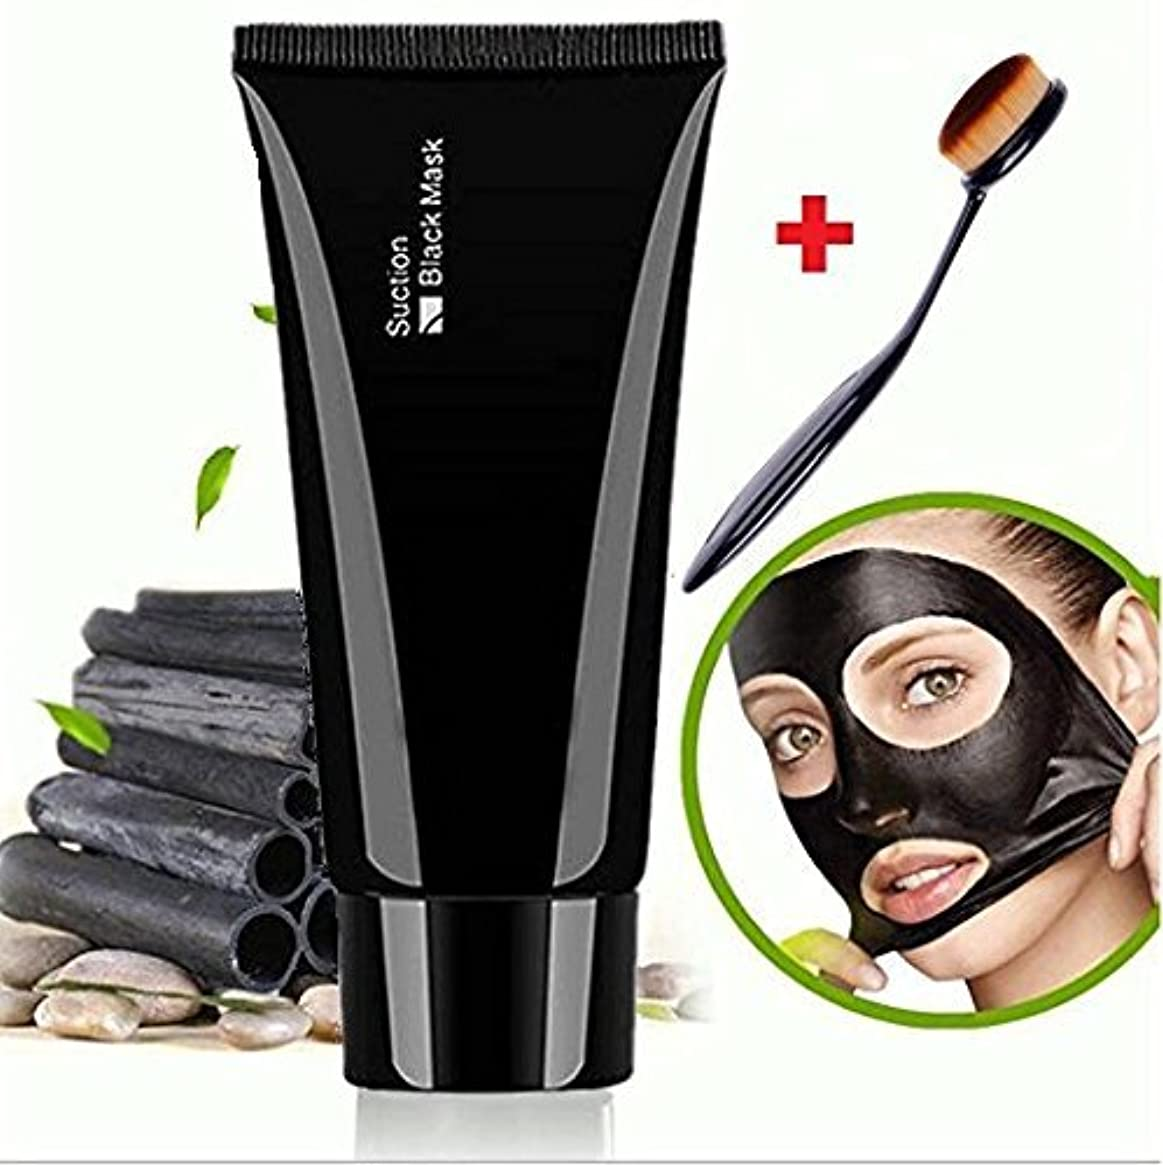 弾性混雑ドレインFacial Mask Black, Face Apeel Cleansing Mask Deep Cleanser Blackhead Acne Remover Peel off Mask + Oval Brush